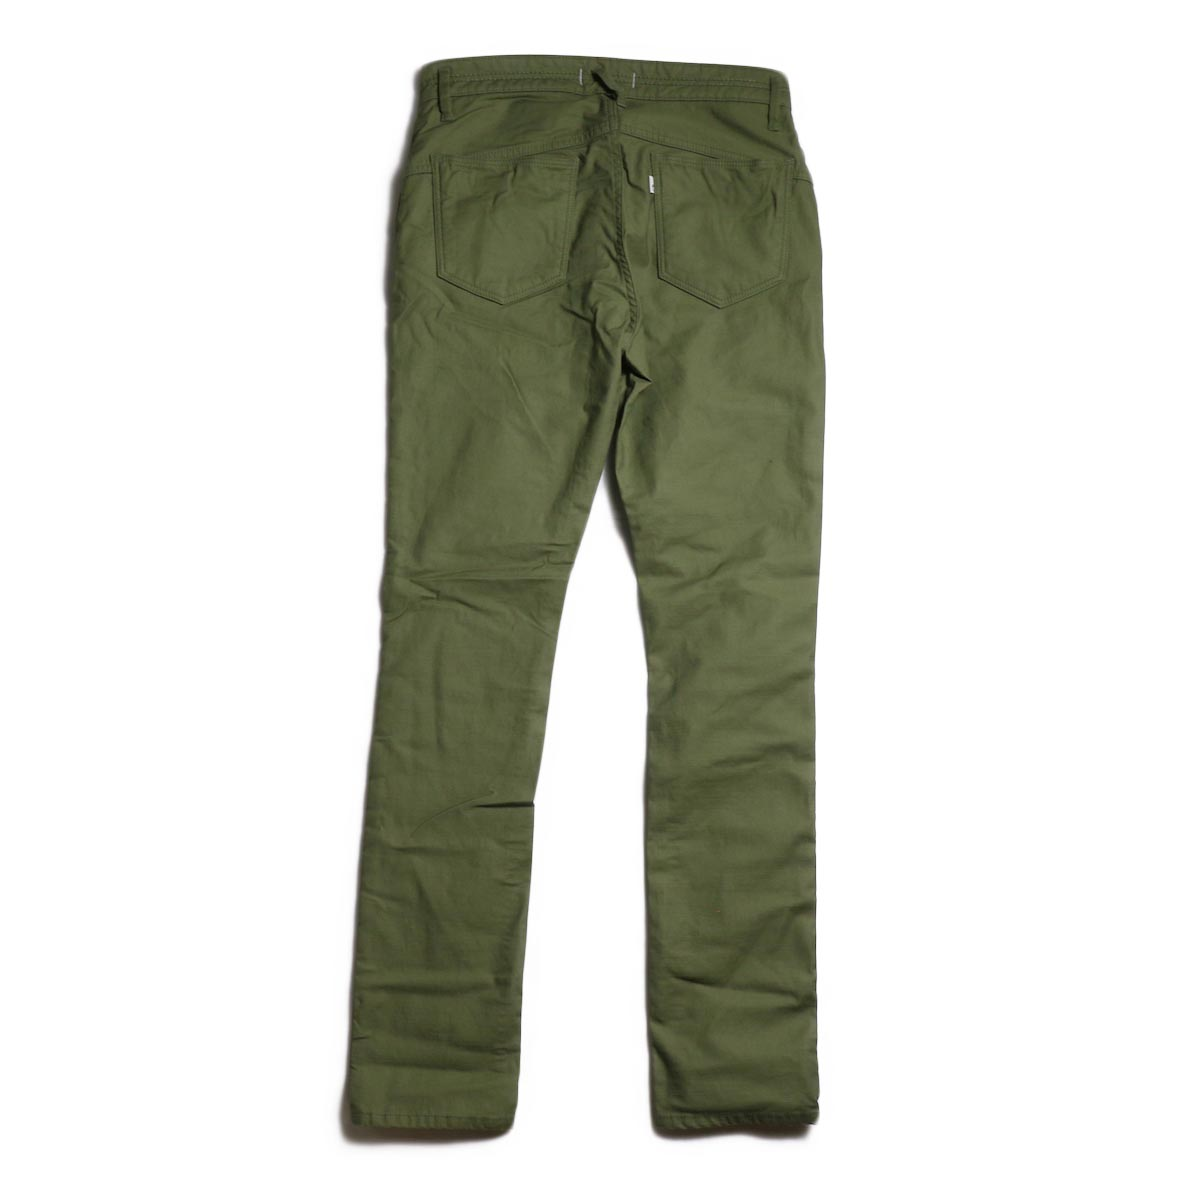 nonnative / DWELLER 5P JEANS DROPPED FIT C/P BACK SATIN STRETCH -Olive 背面